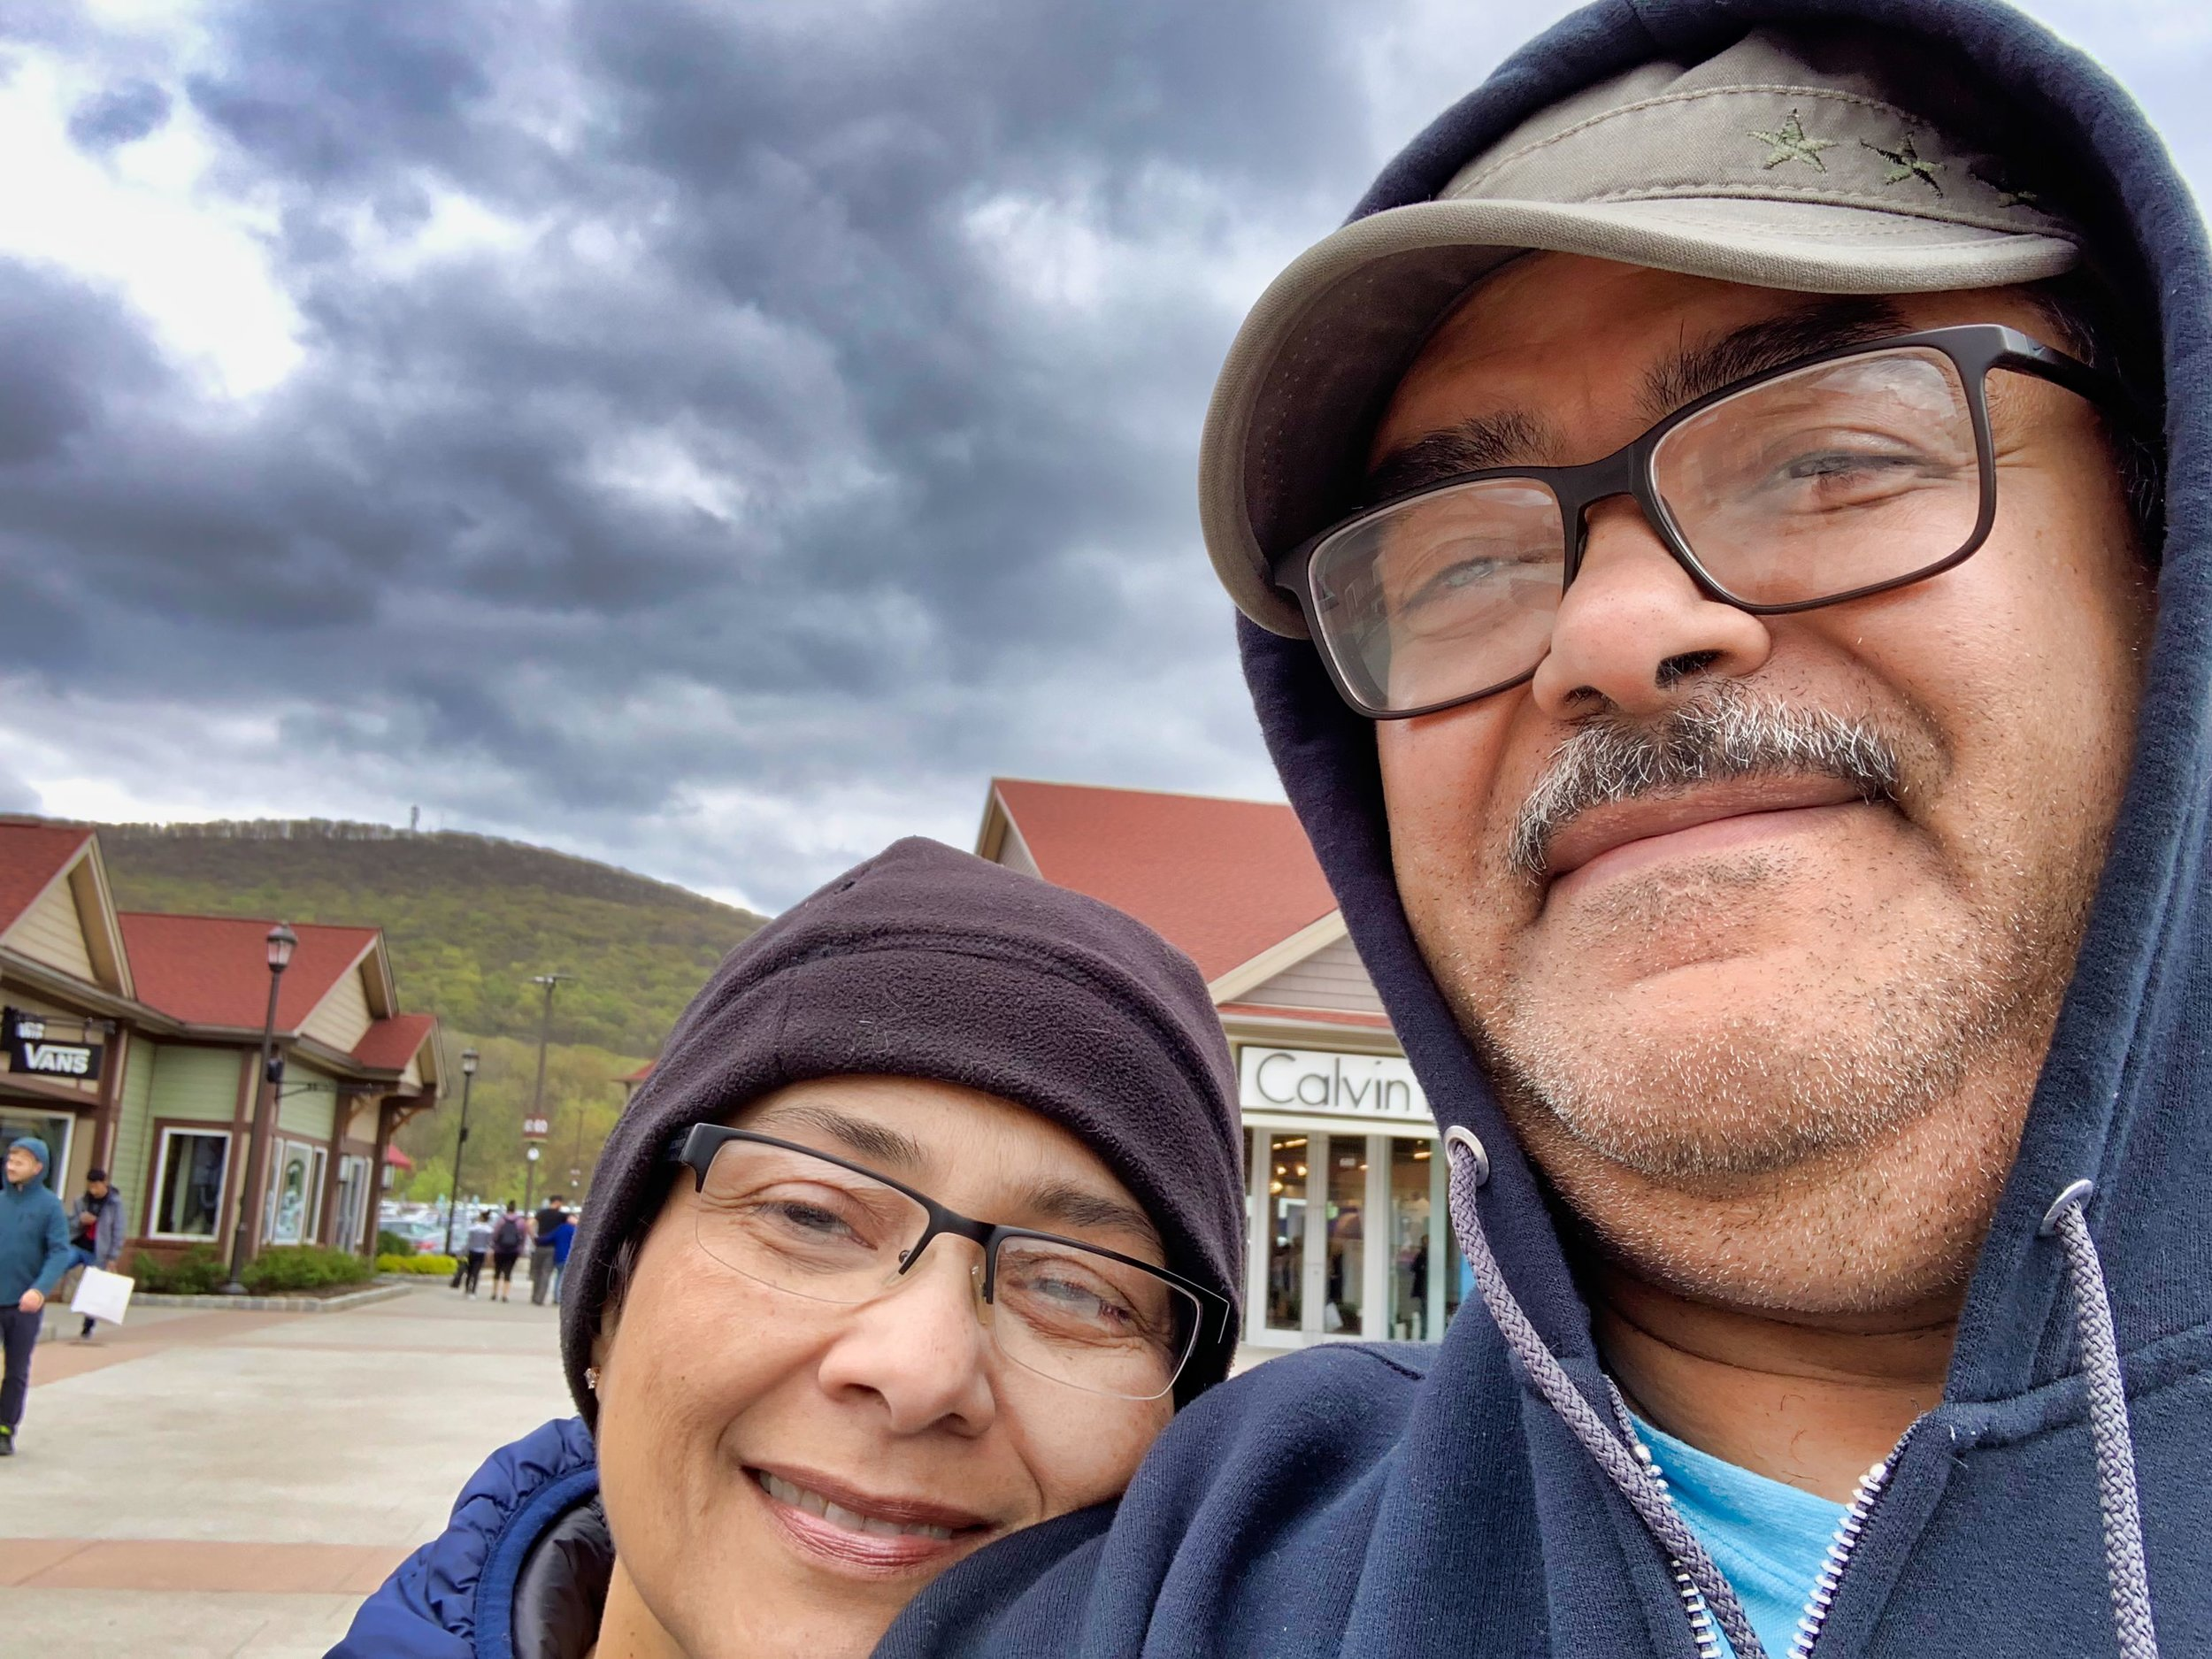 My wife and I at a very cold outlets!